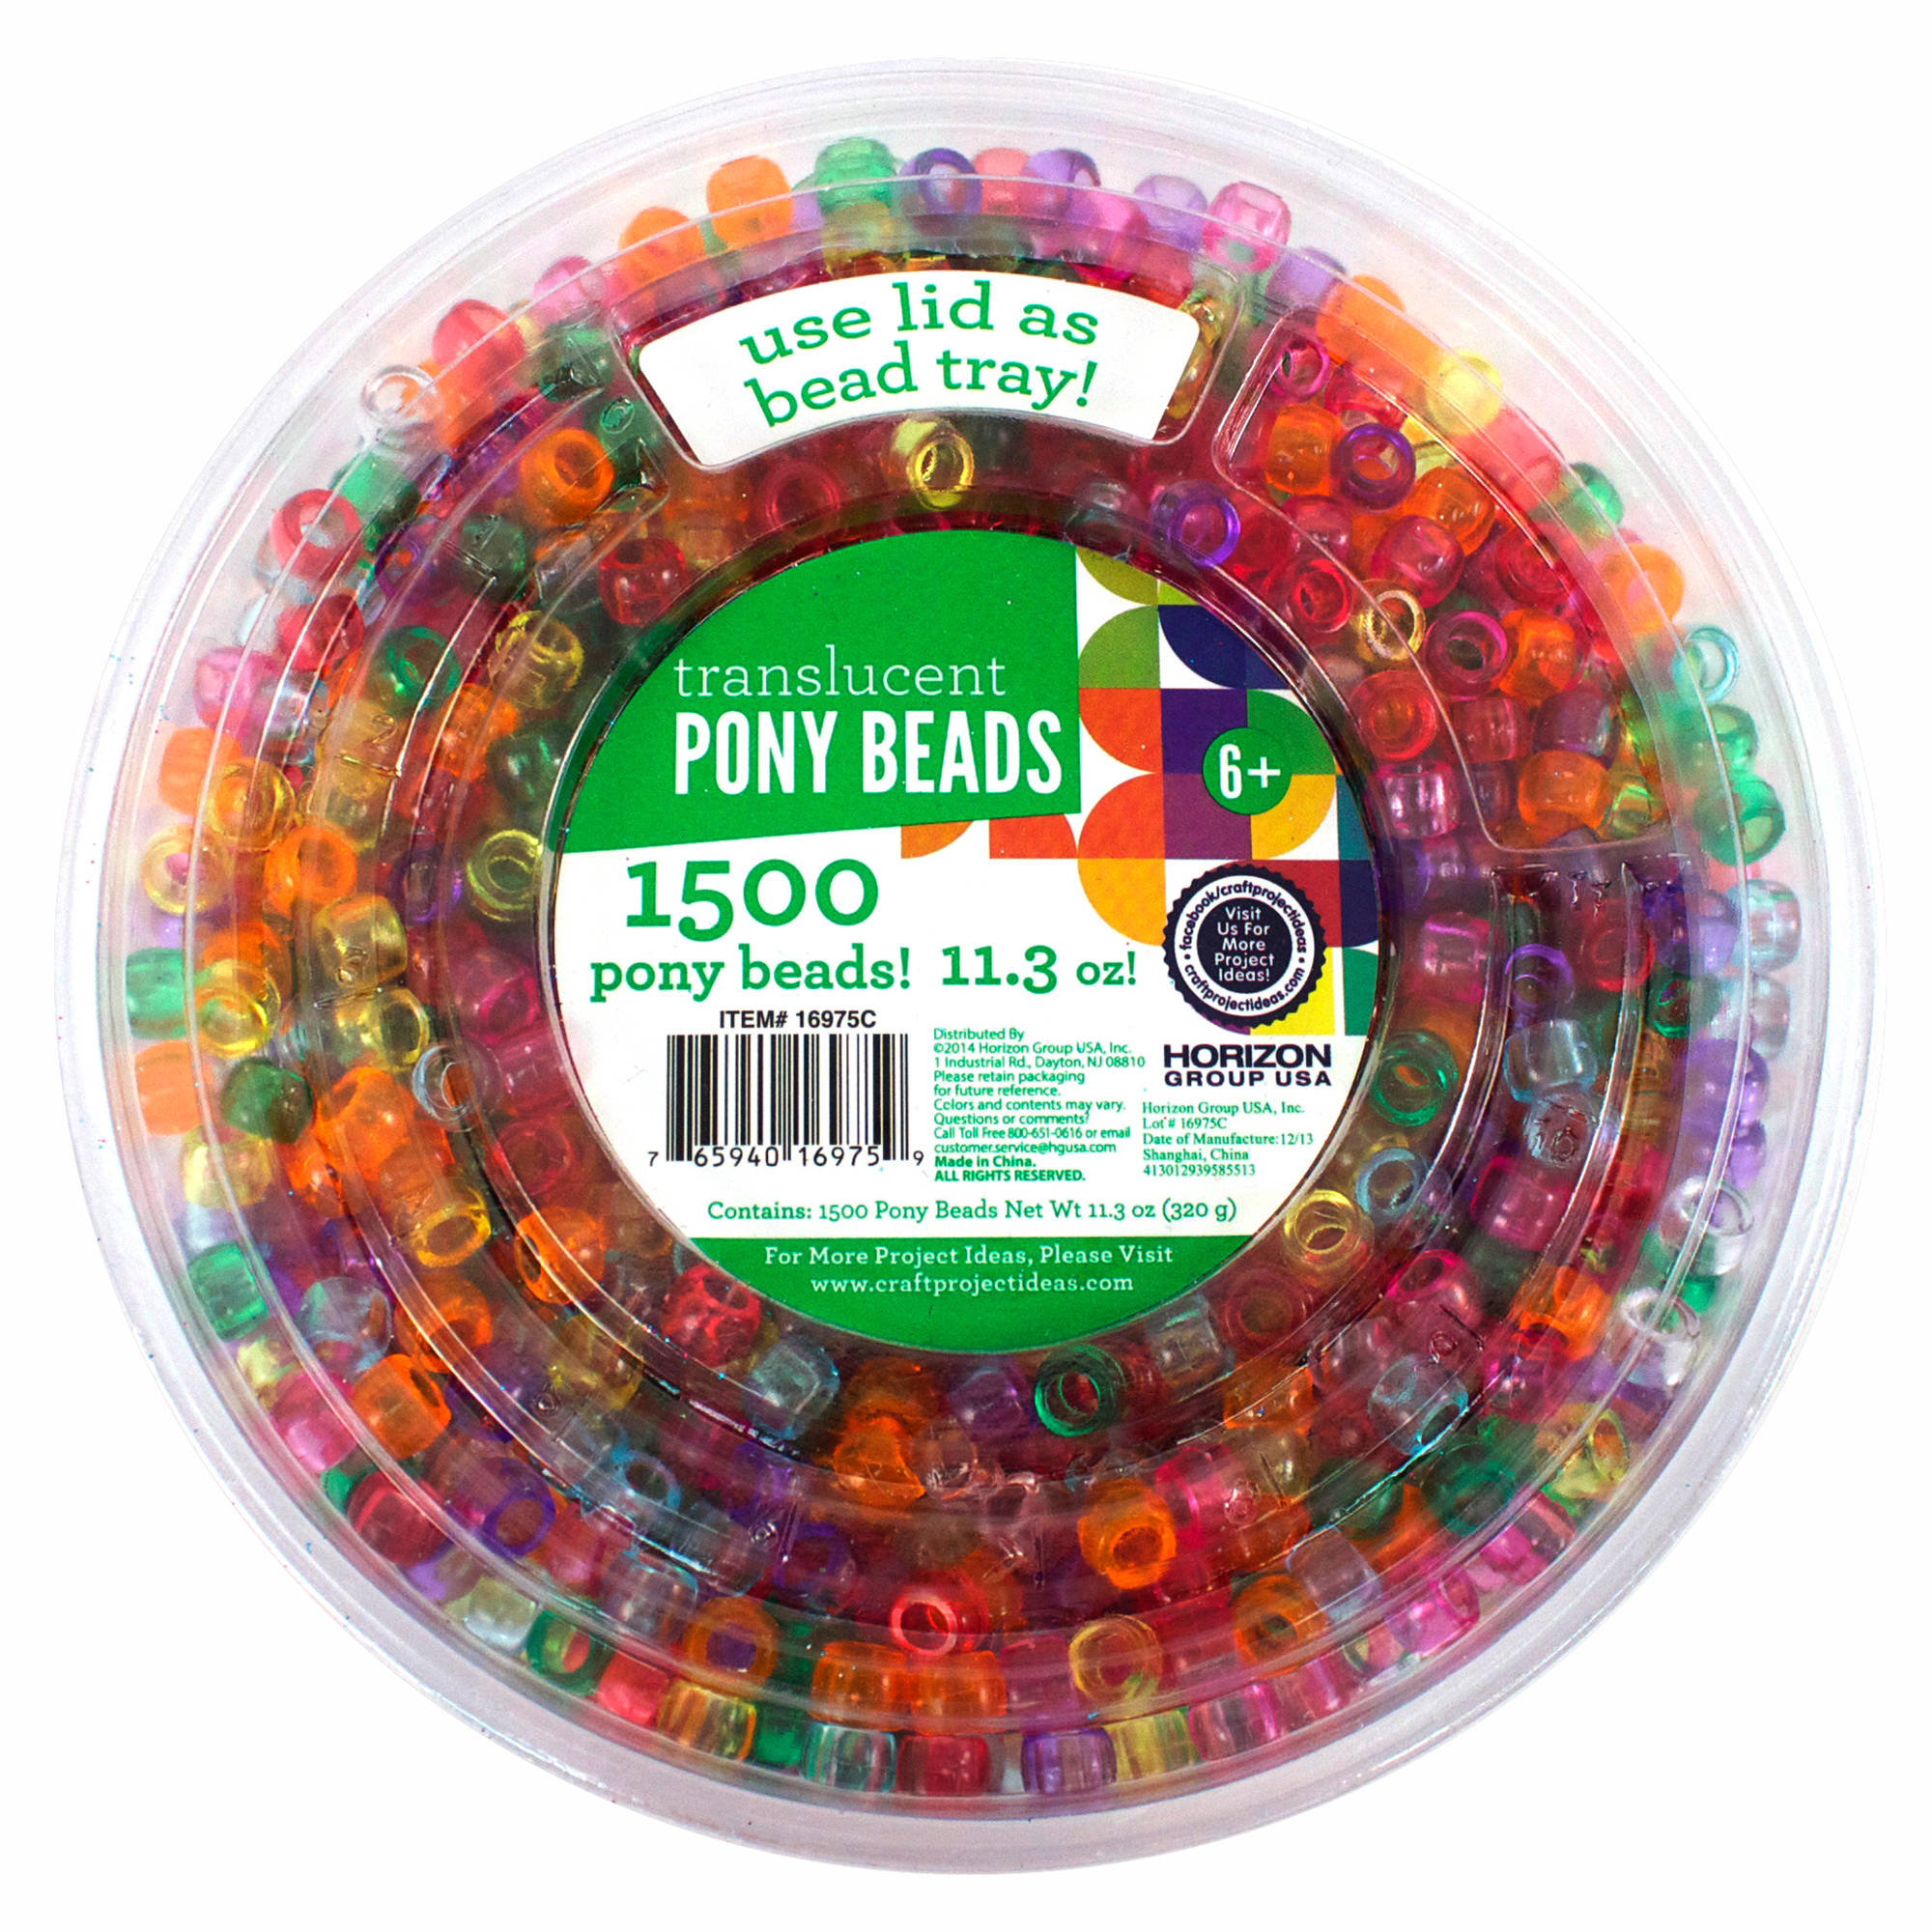 Translucent Multi-Color Pony Beads, 1500 beads, by Horizon Group USA